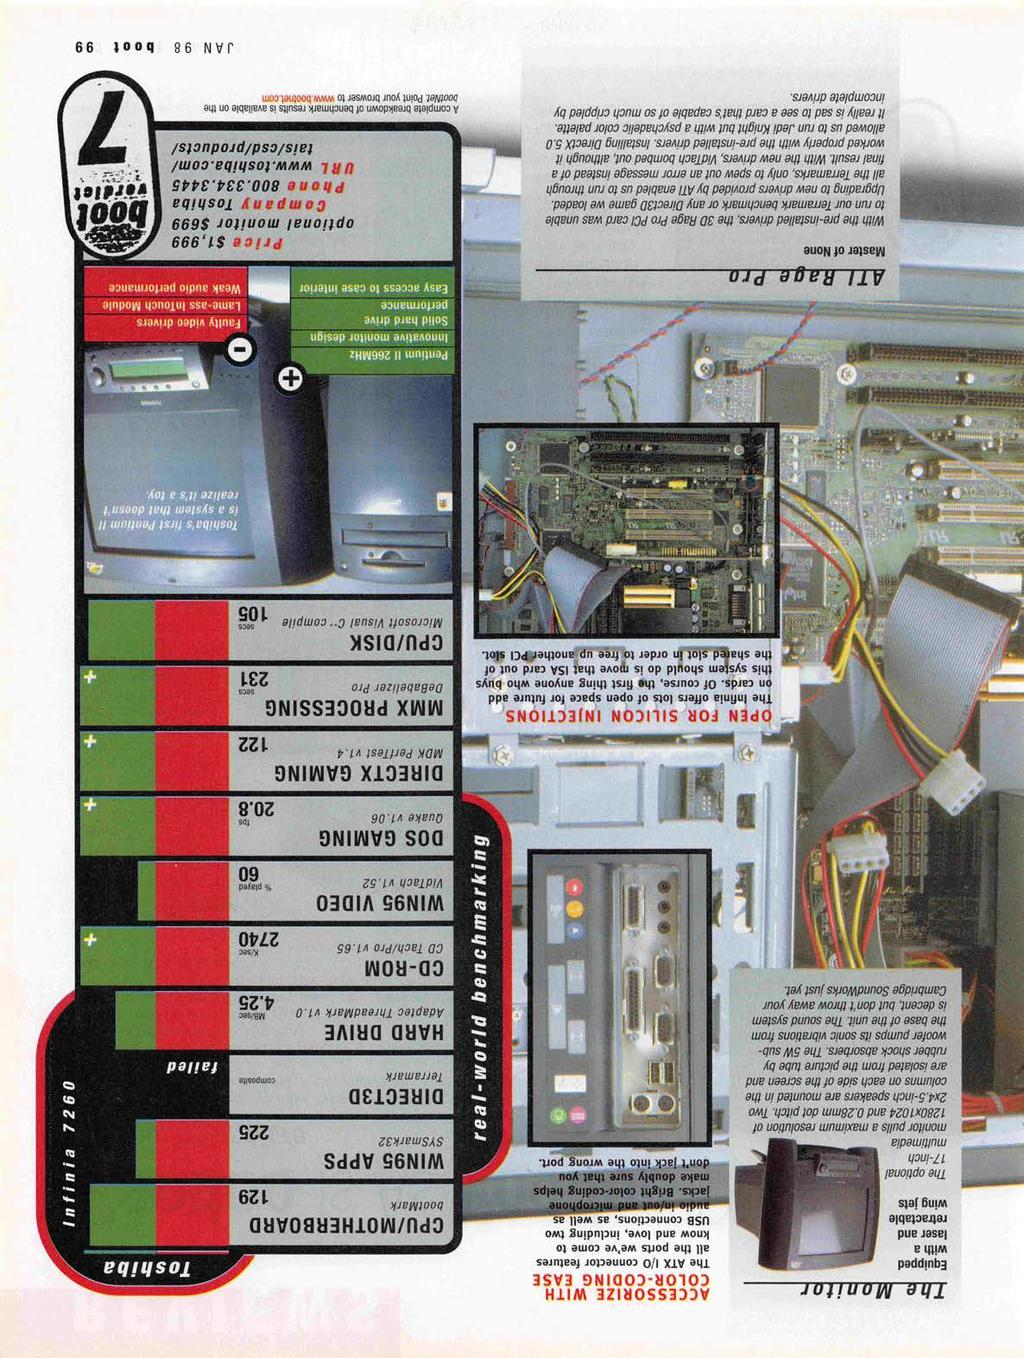 1998 Pure Po Benchmarking Your 3d Accelerator Card Everything You 500 X 225 23 Kb Jpeg 4 Wire Trailer Wiring Diagram Boat Thu Mnnitnr Equipped With A Laser And Retractable Wing Jets The Optional 17 Inch Muitimedia